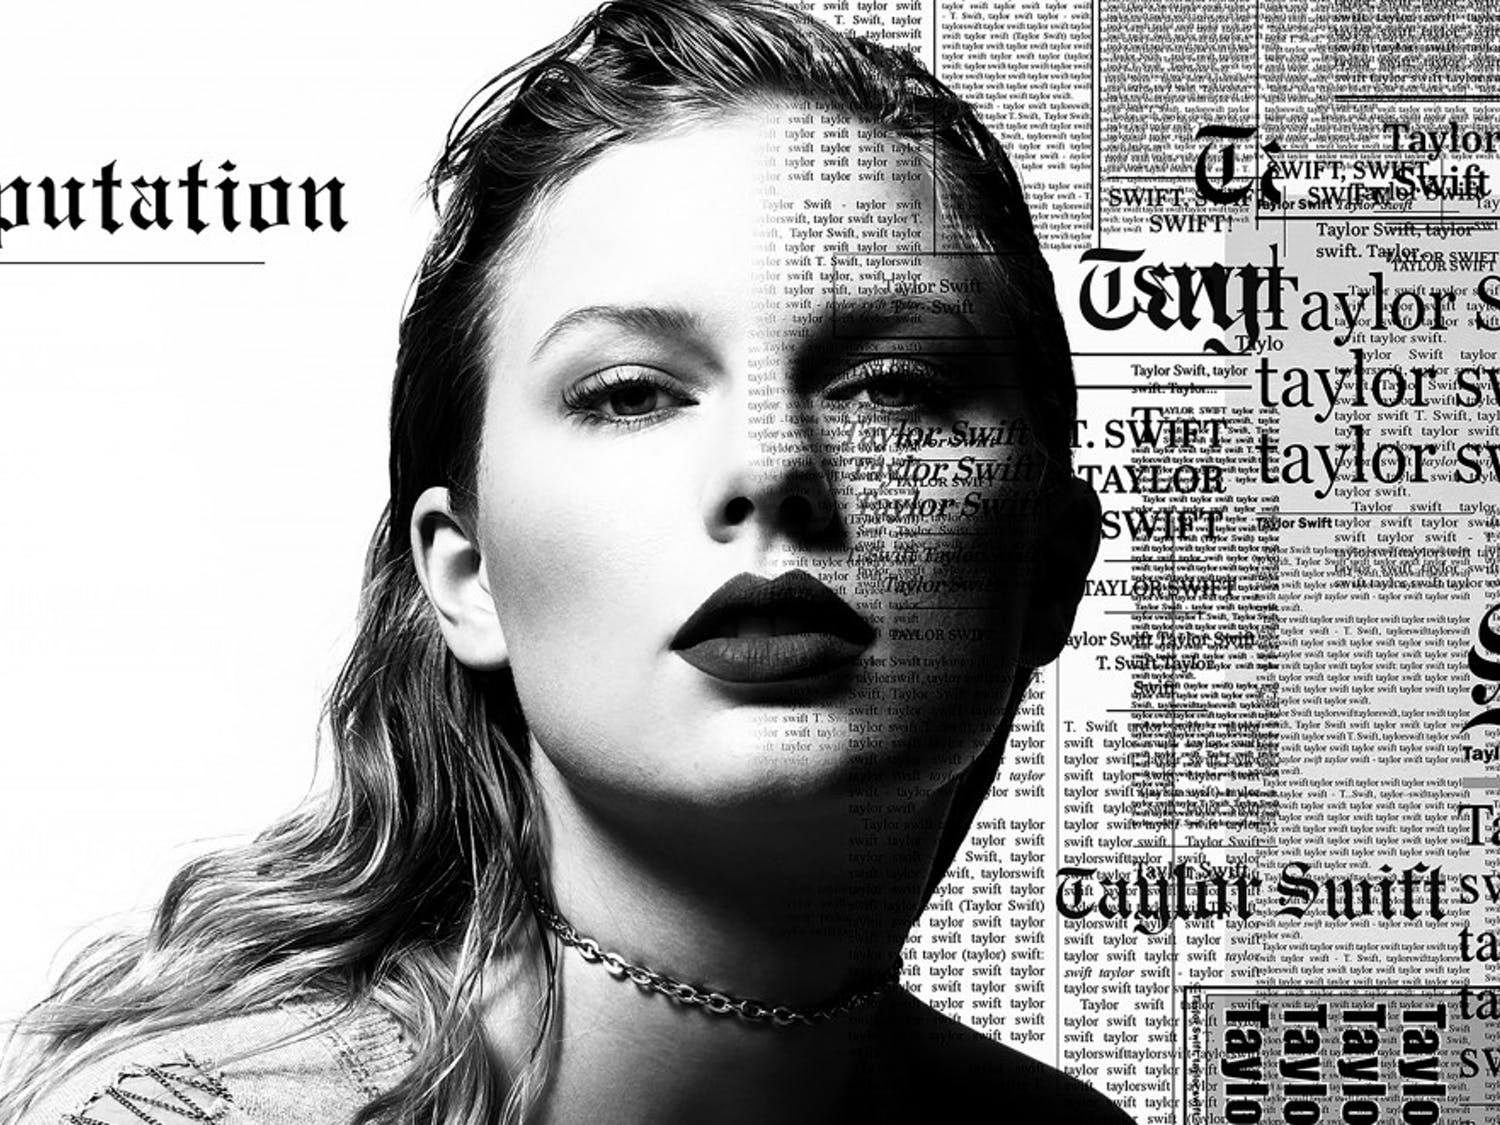 """Swift boasts vulnerability and a renewed form on her latest album """"reputation."""" The project shows off an uncut musician with high-class lyricism and pop music content."""